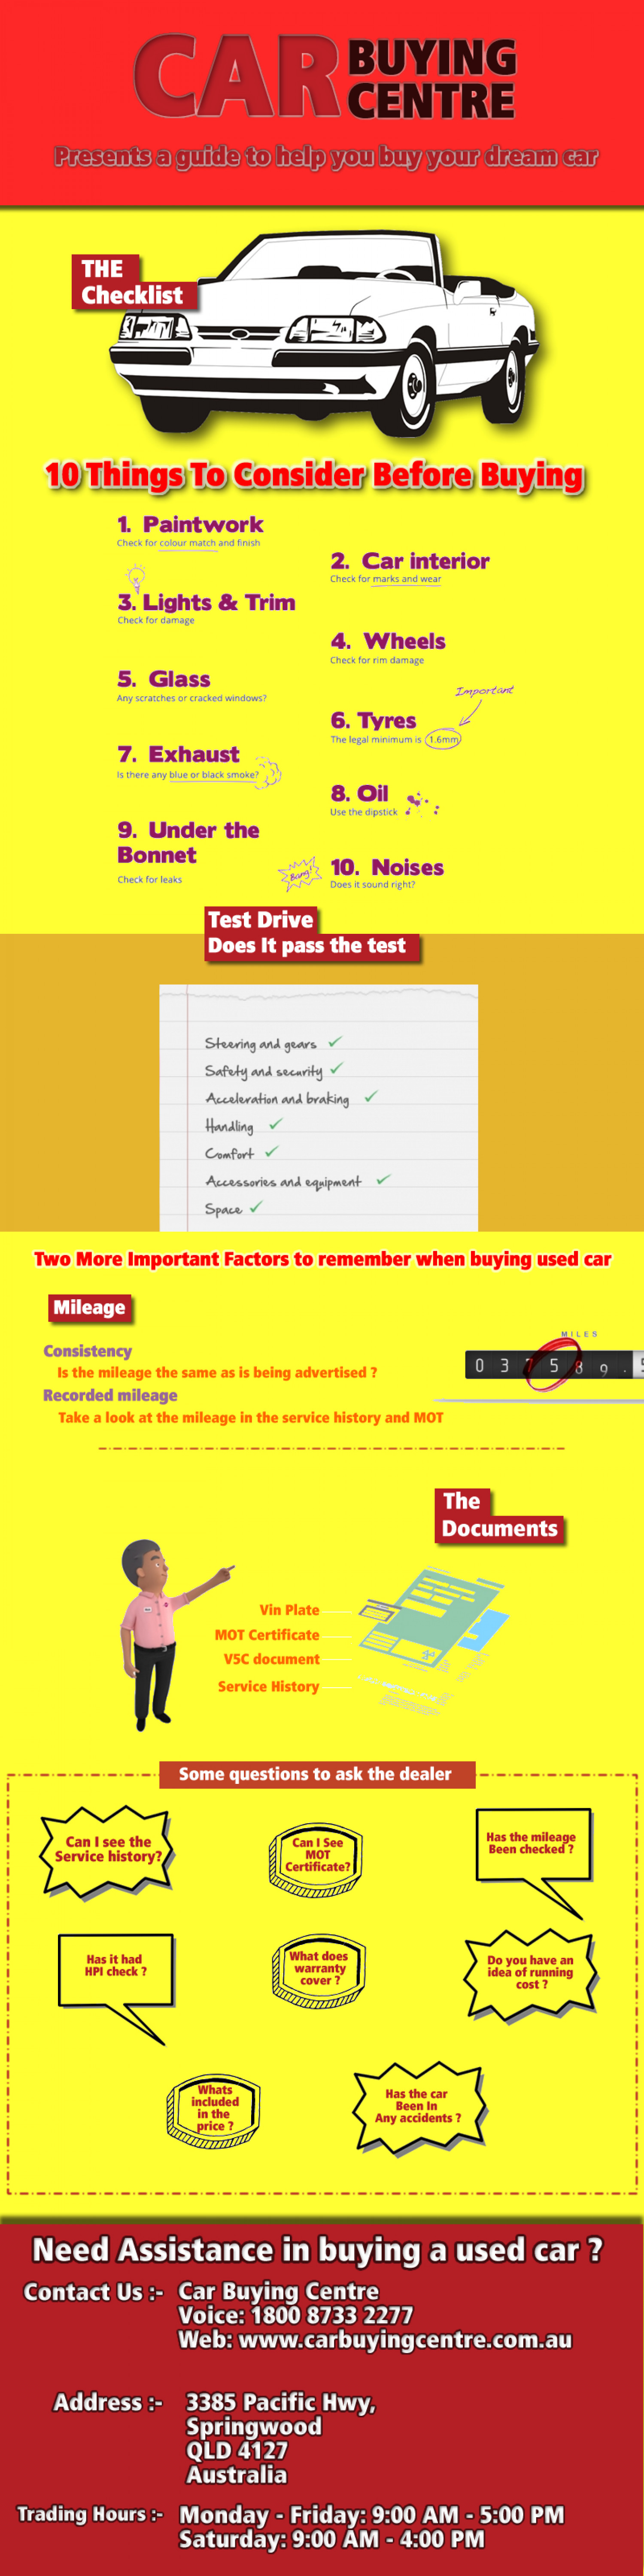 Car Buying Centre  Infographic